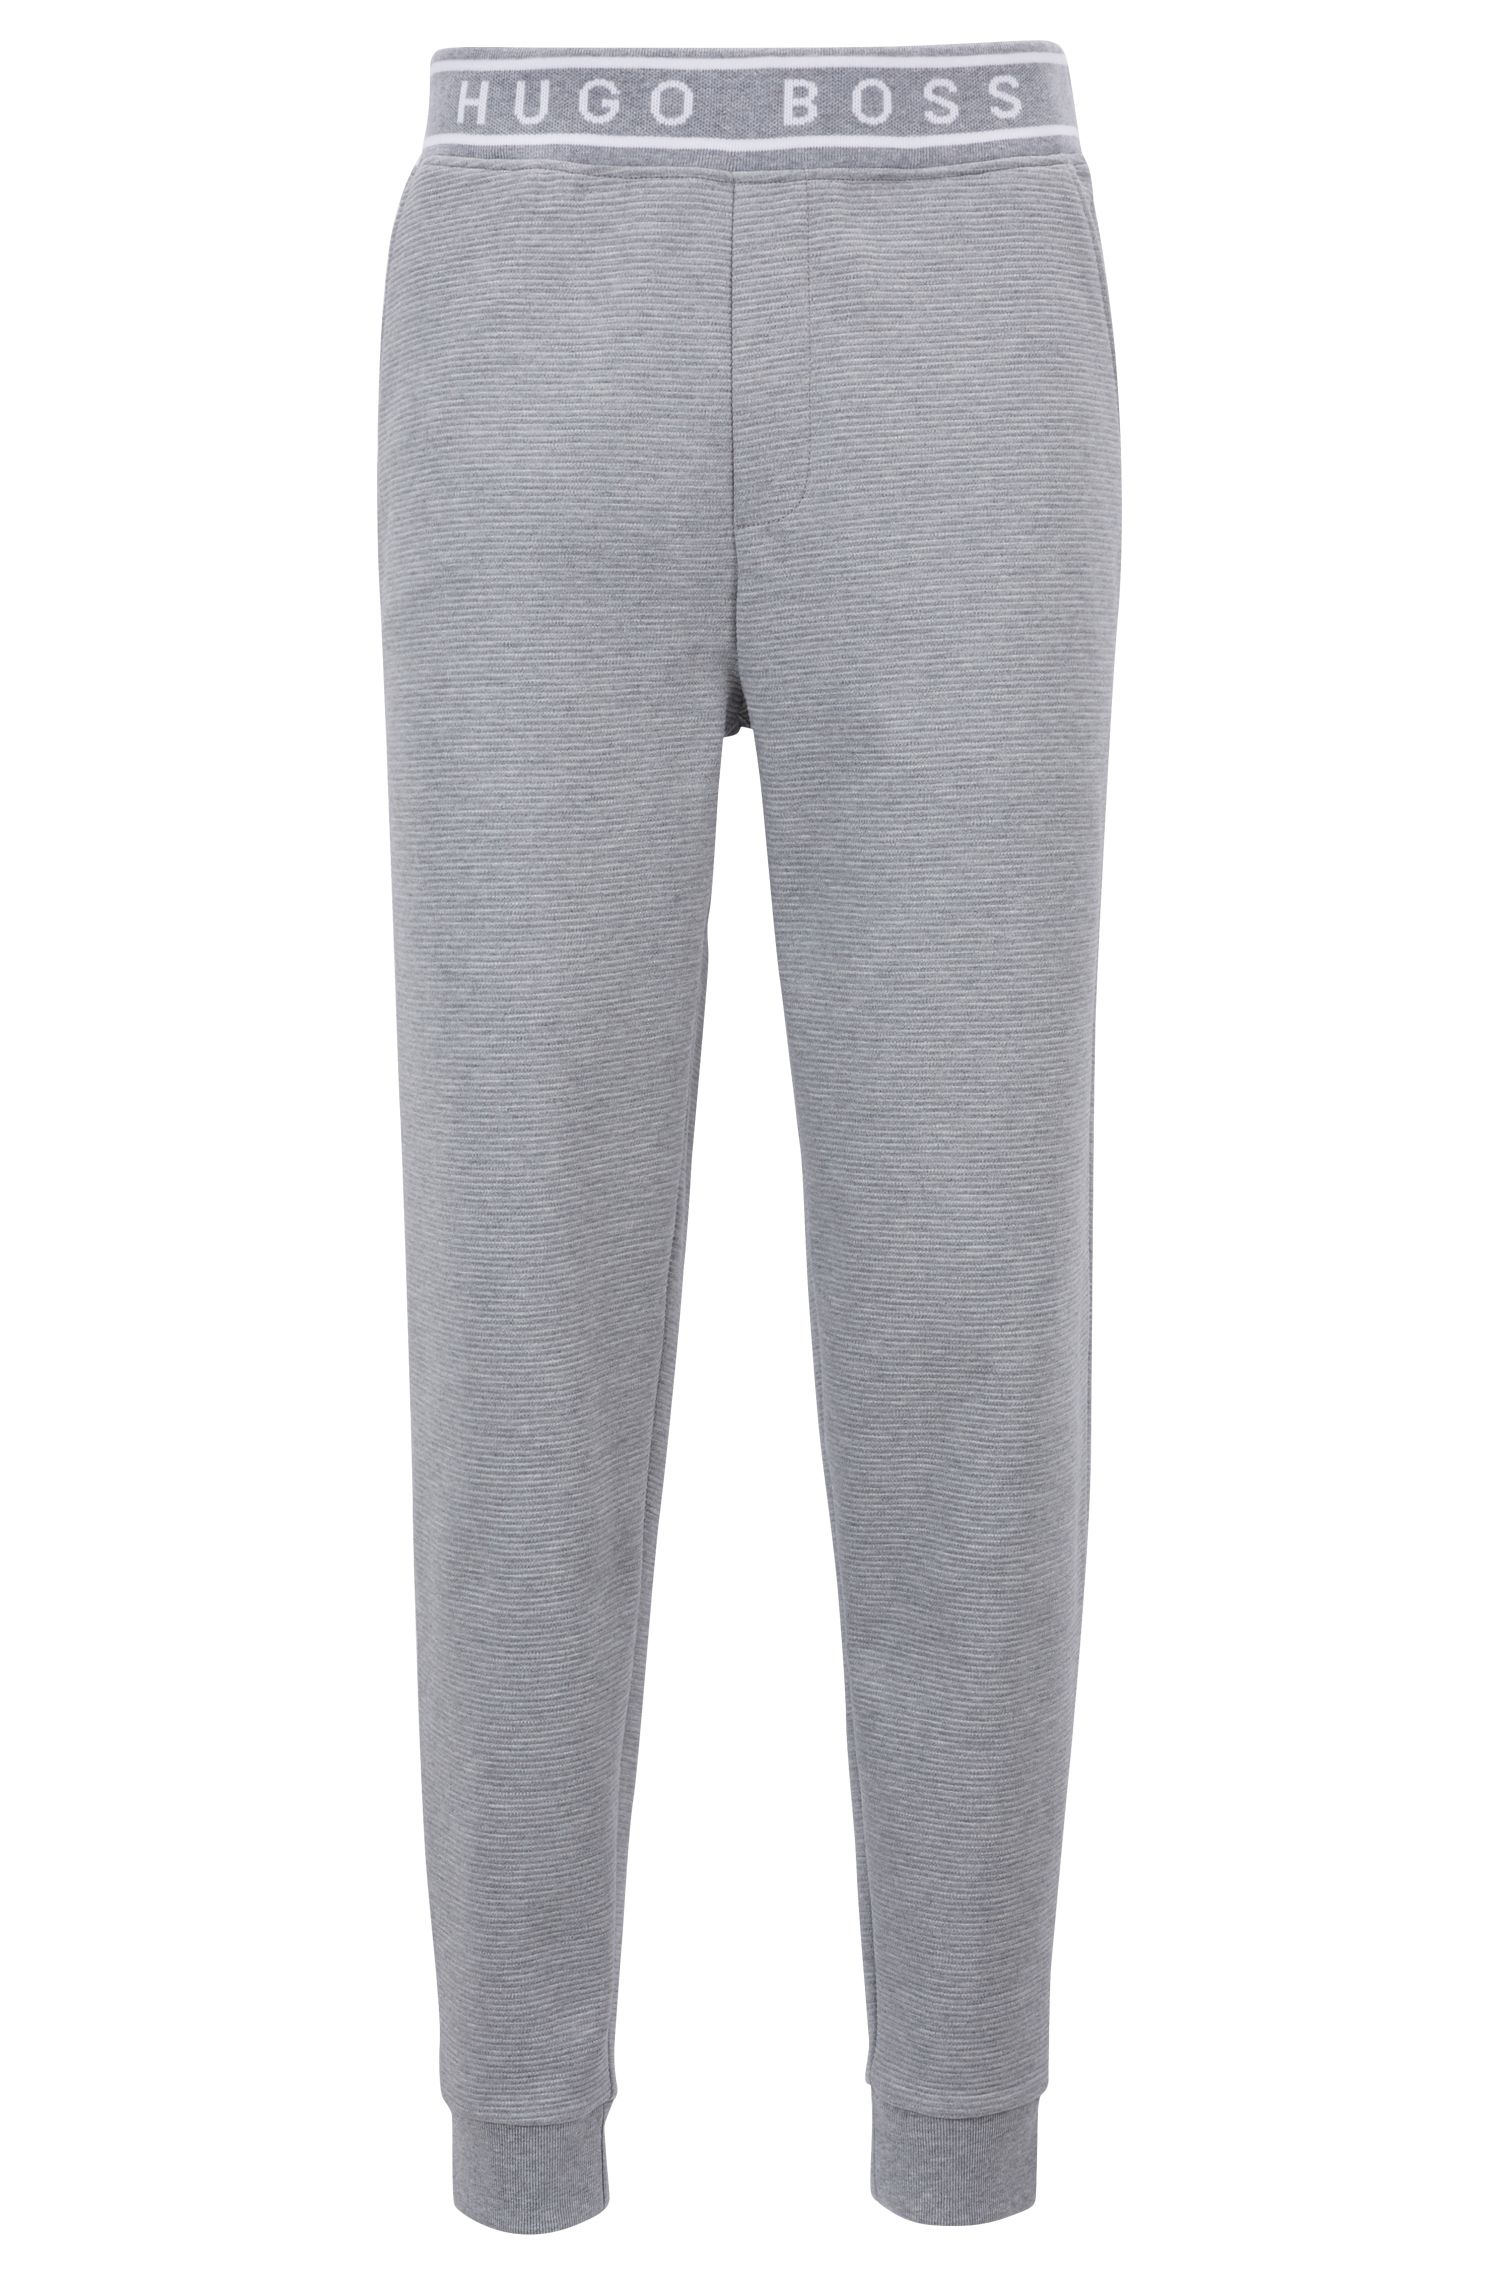 Cuffed-hem loungewear trousers in cotton interlock, Grey